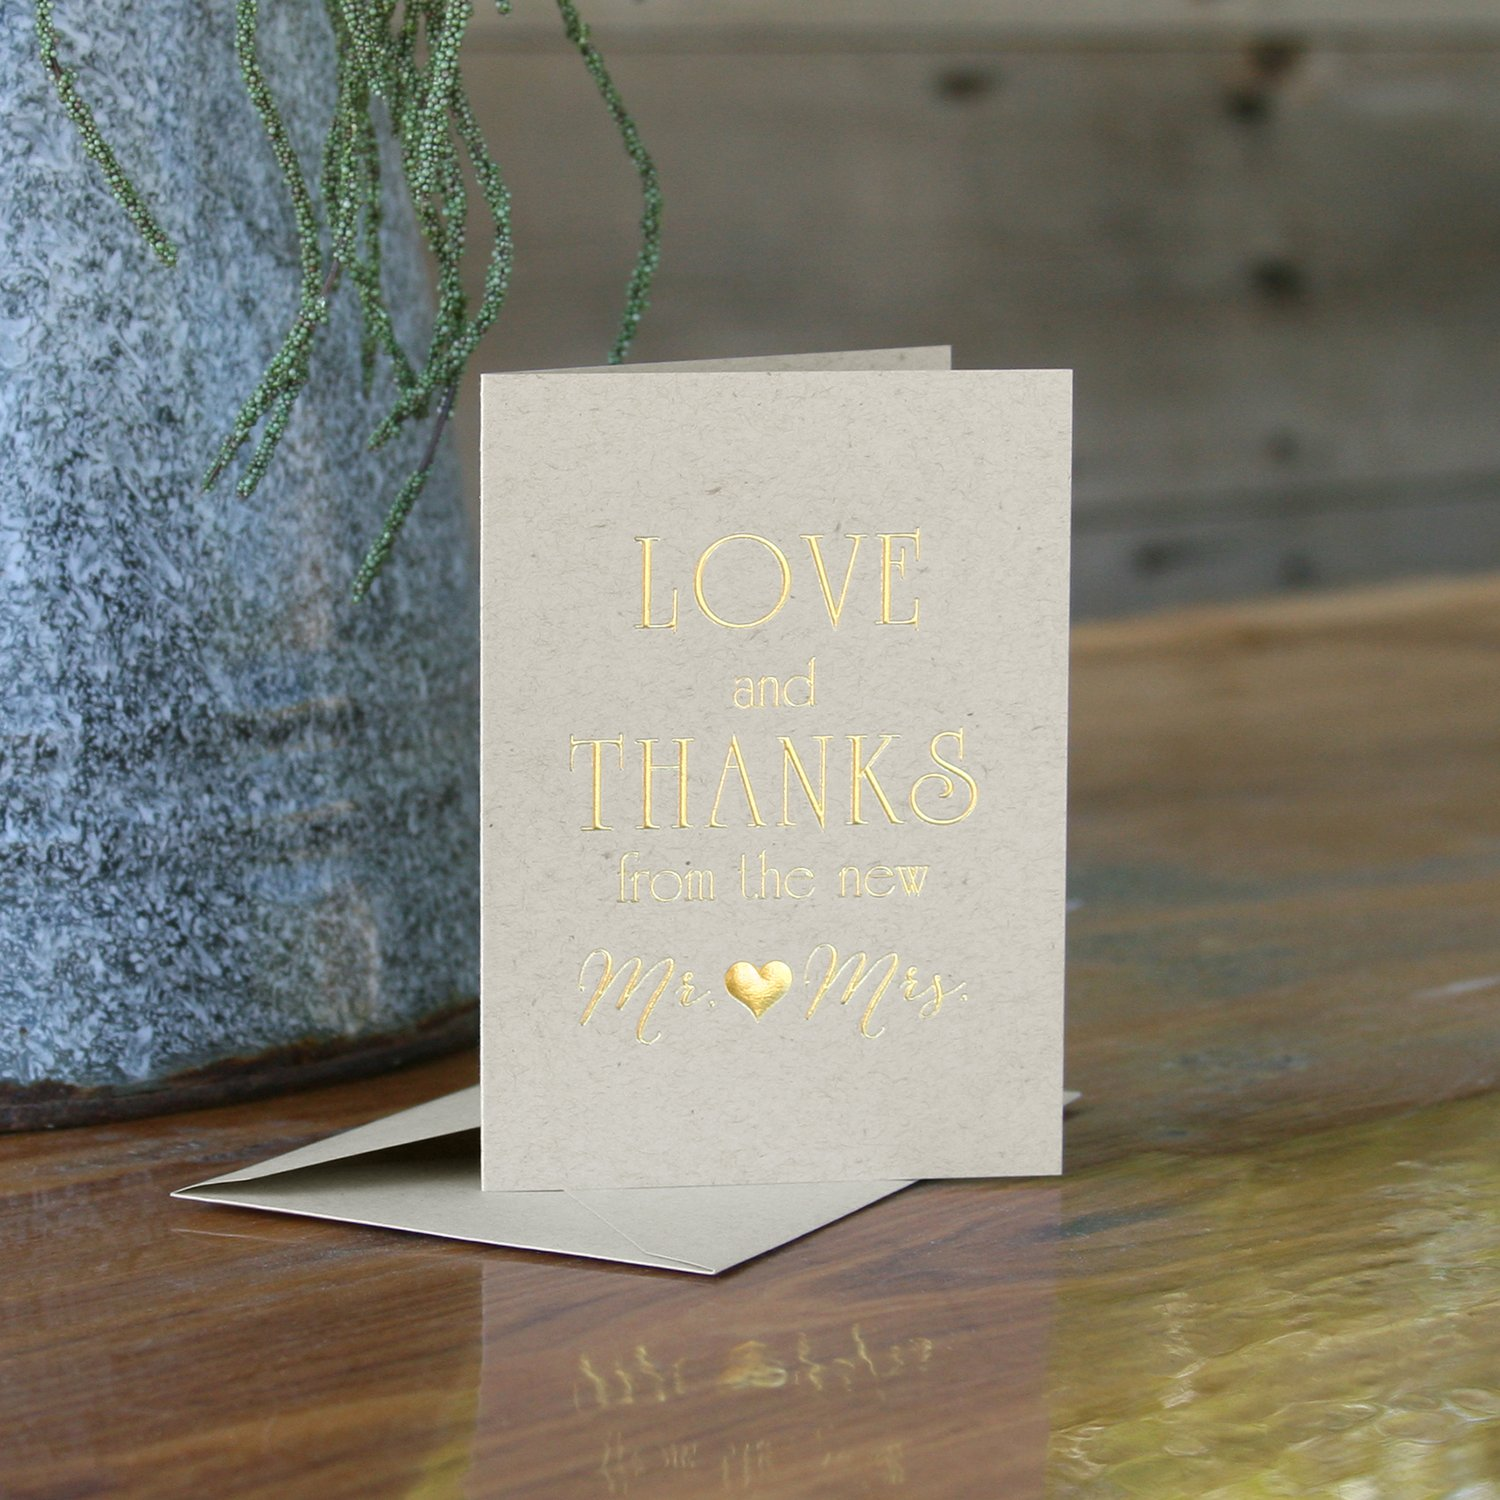 Hortense B. Hewitt 21586 love & Thanks Thank You Cards, 50Count, , Love/Thanks by Hortense B. Hewitt (Image #2)